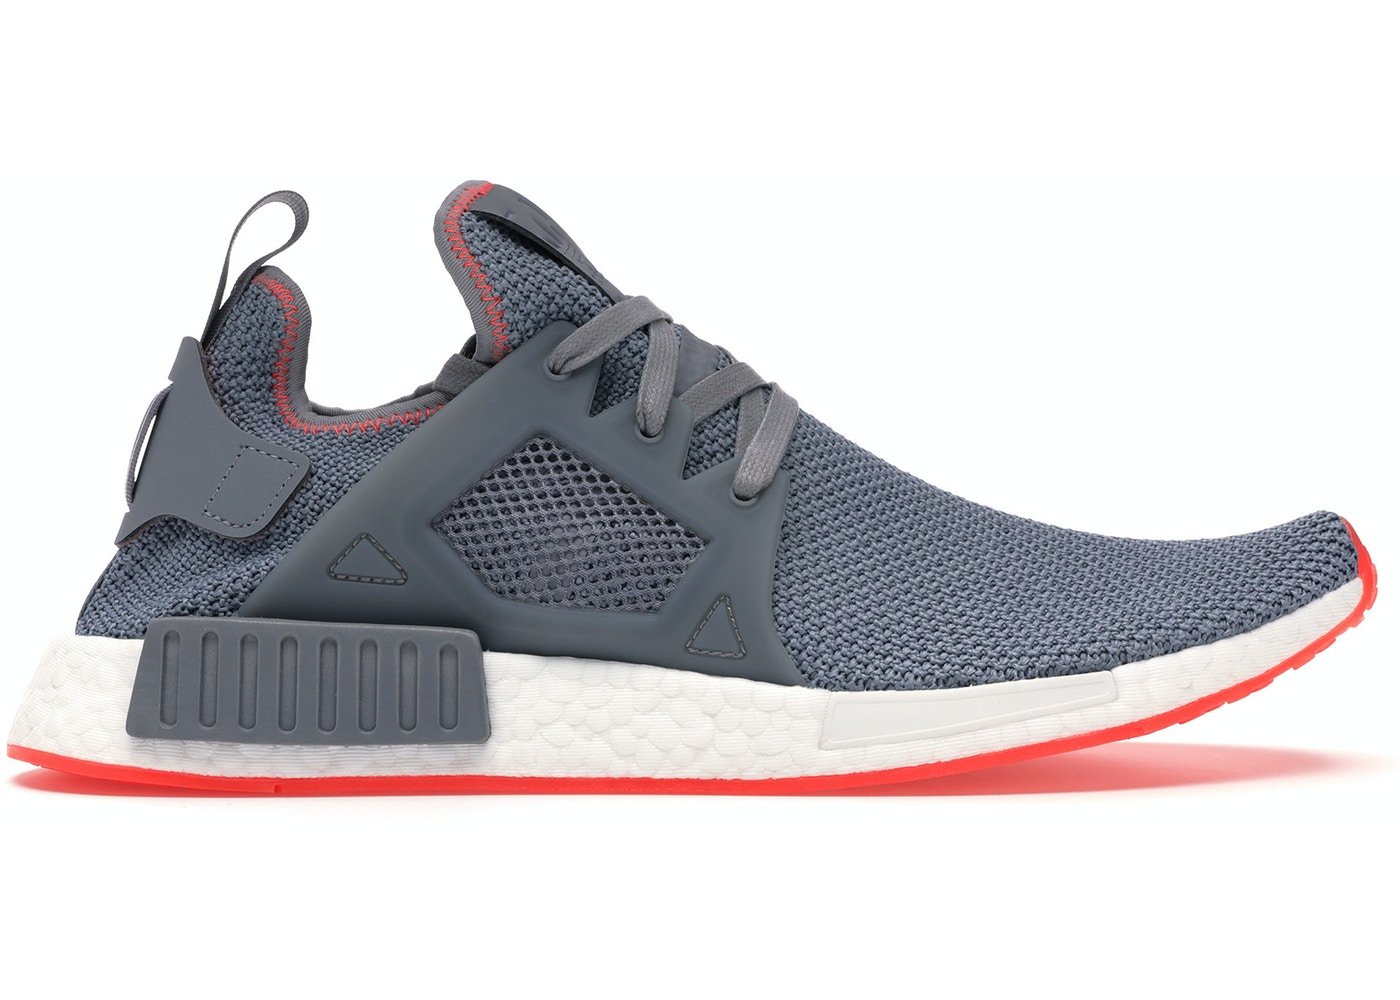 Adidas Nmd Xr1 Grey Three Solar Red By9925